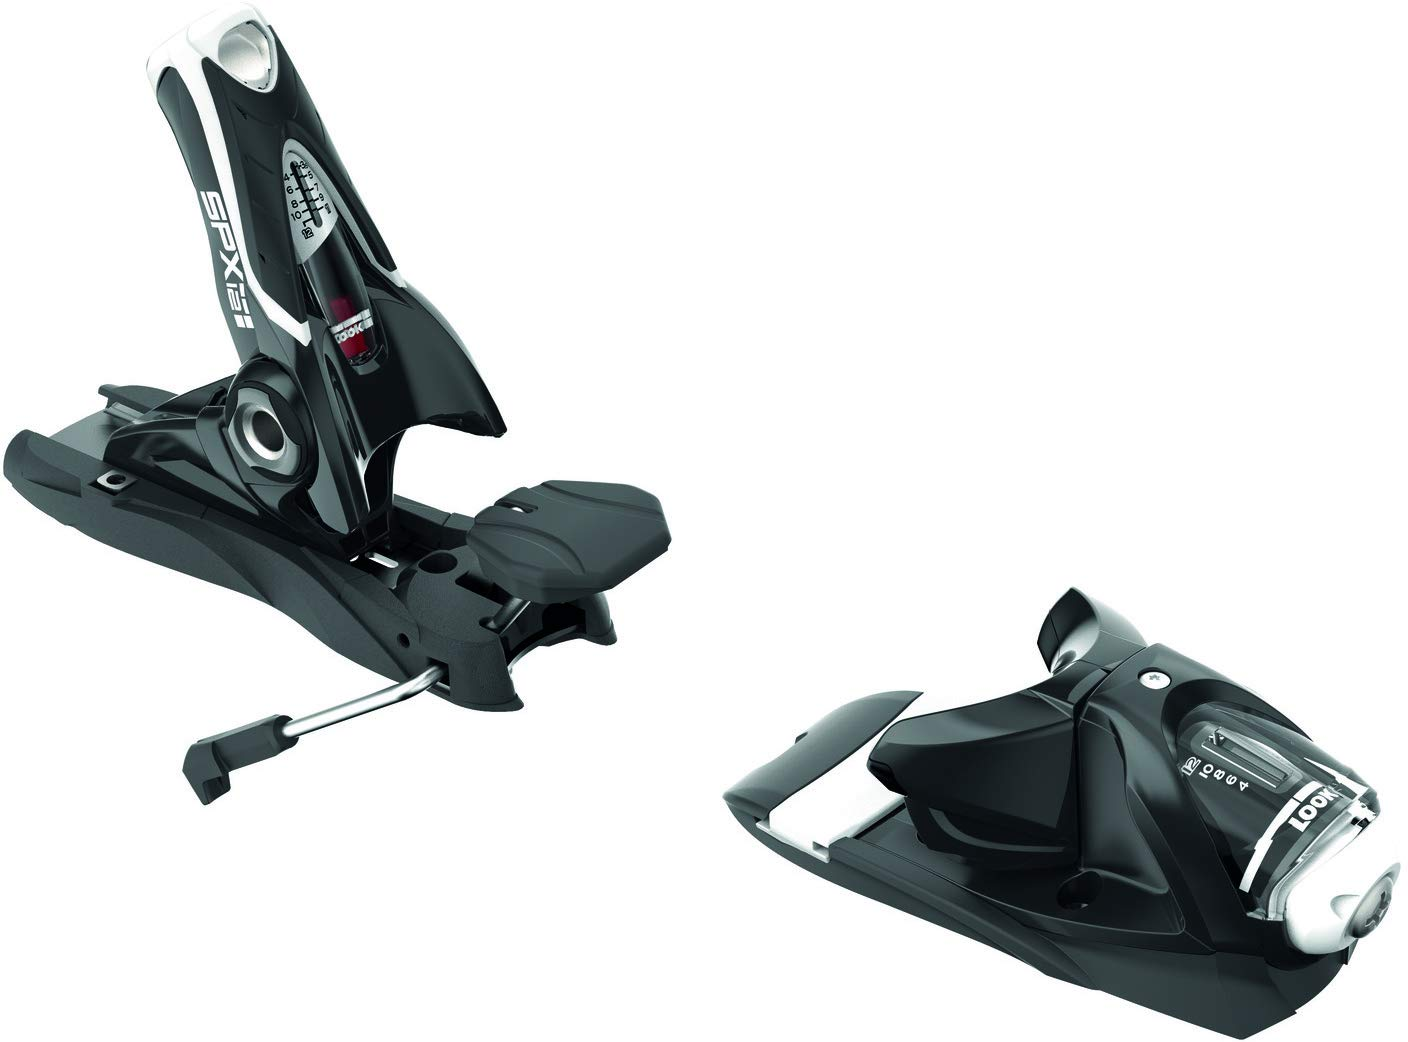 Look SPX 12 Dual Ski Bindings